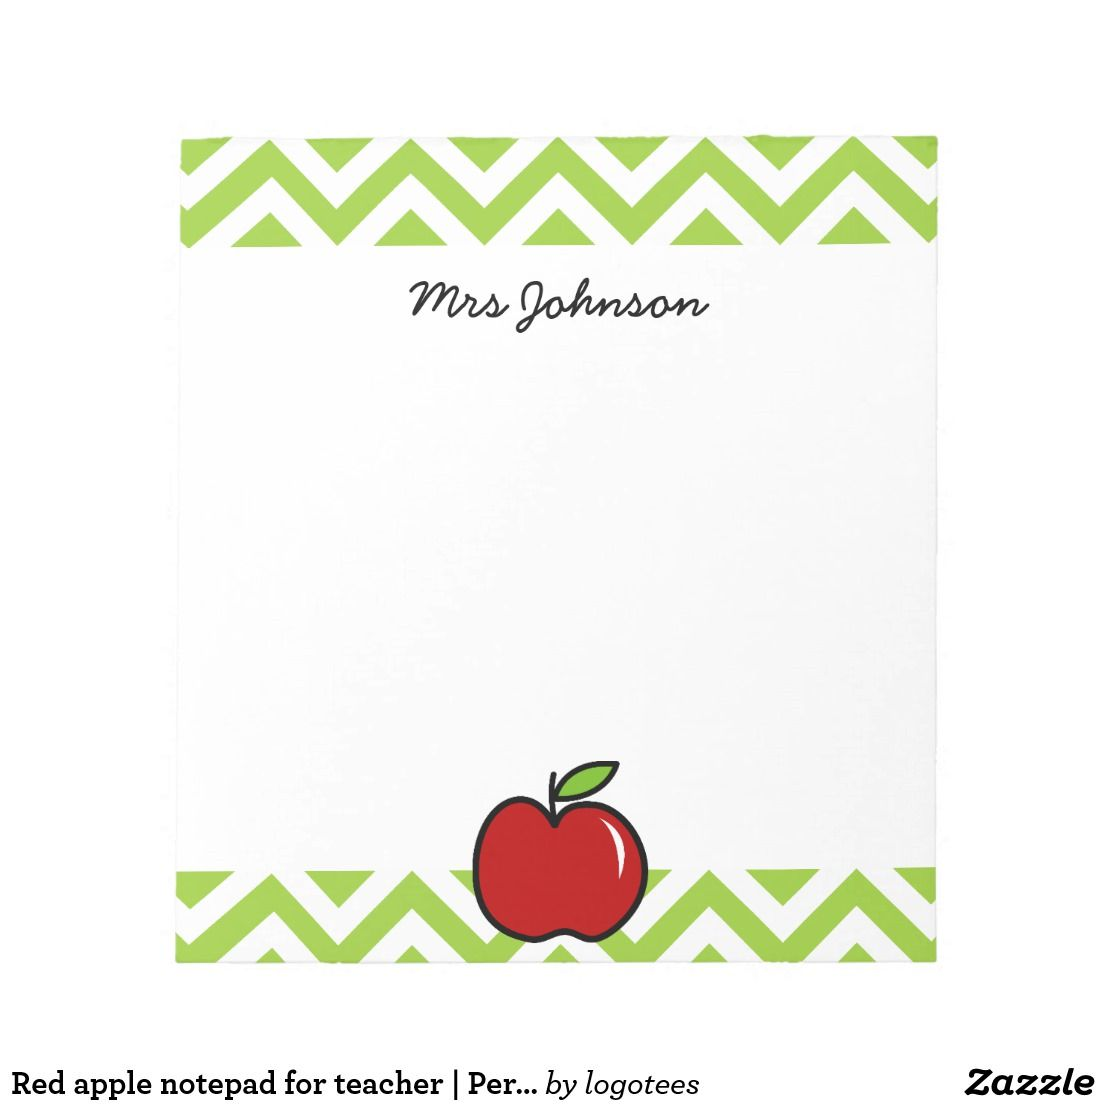 Red apple notepad for teacher Personalized name Zazzle